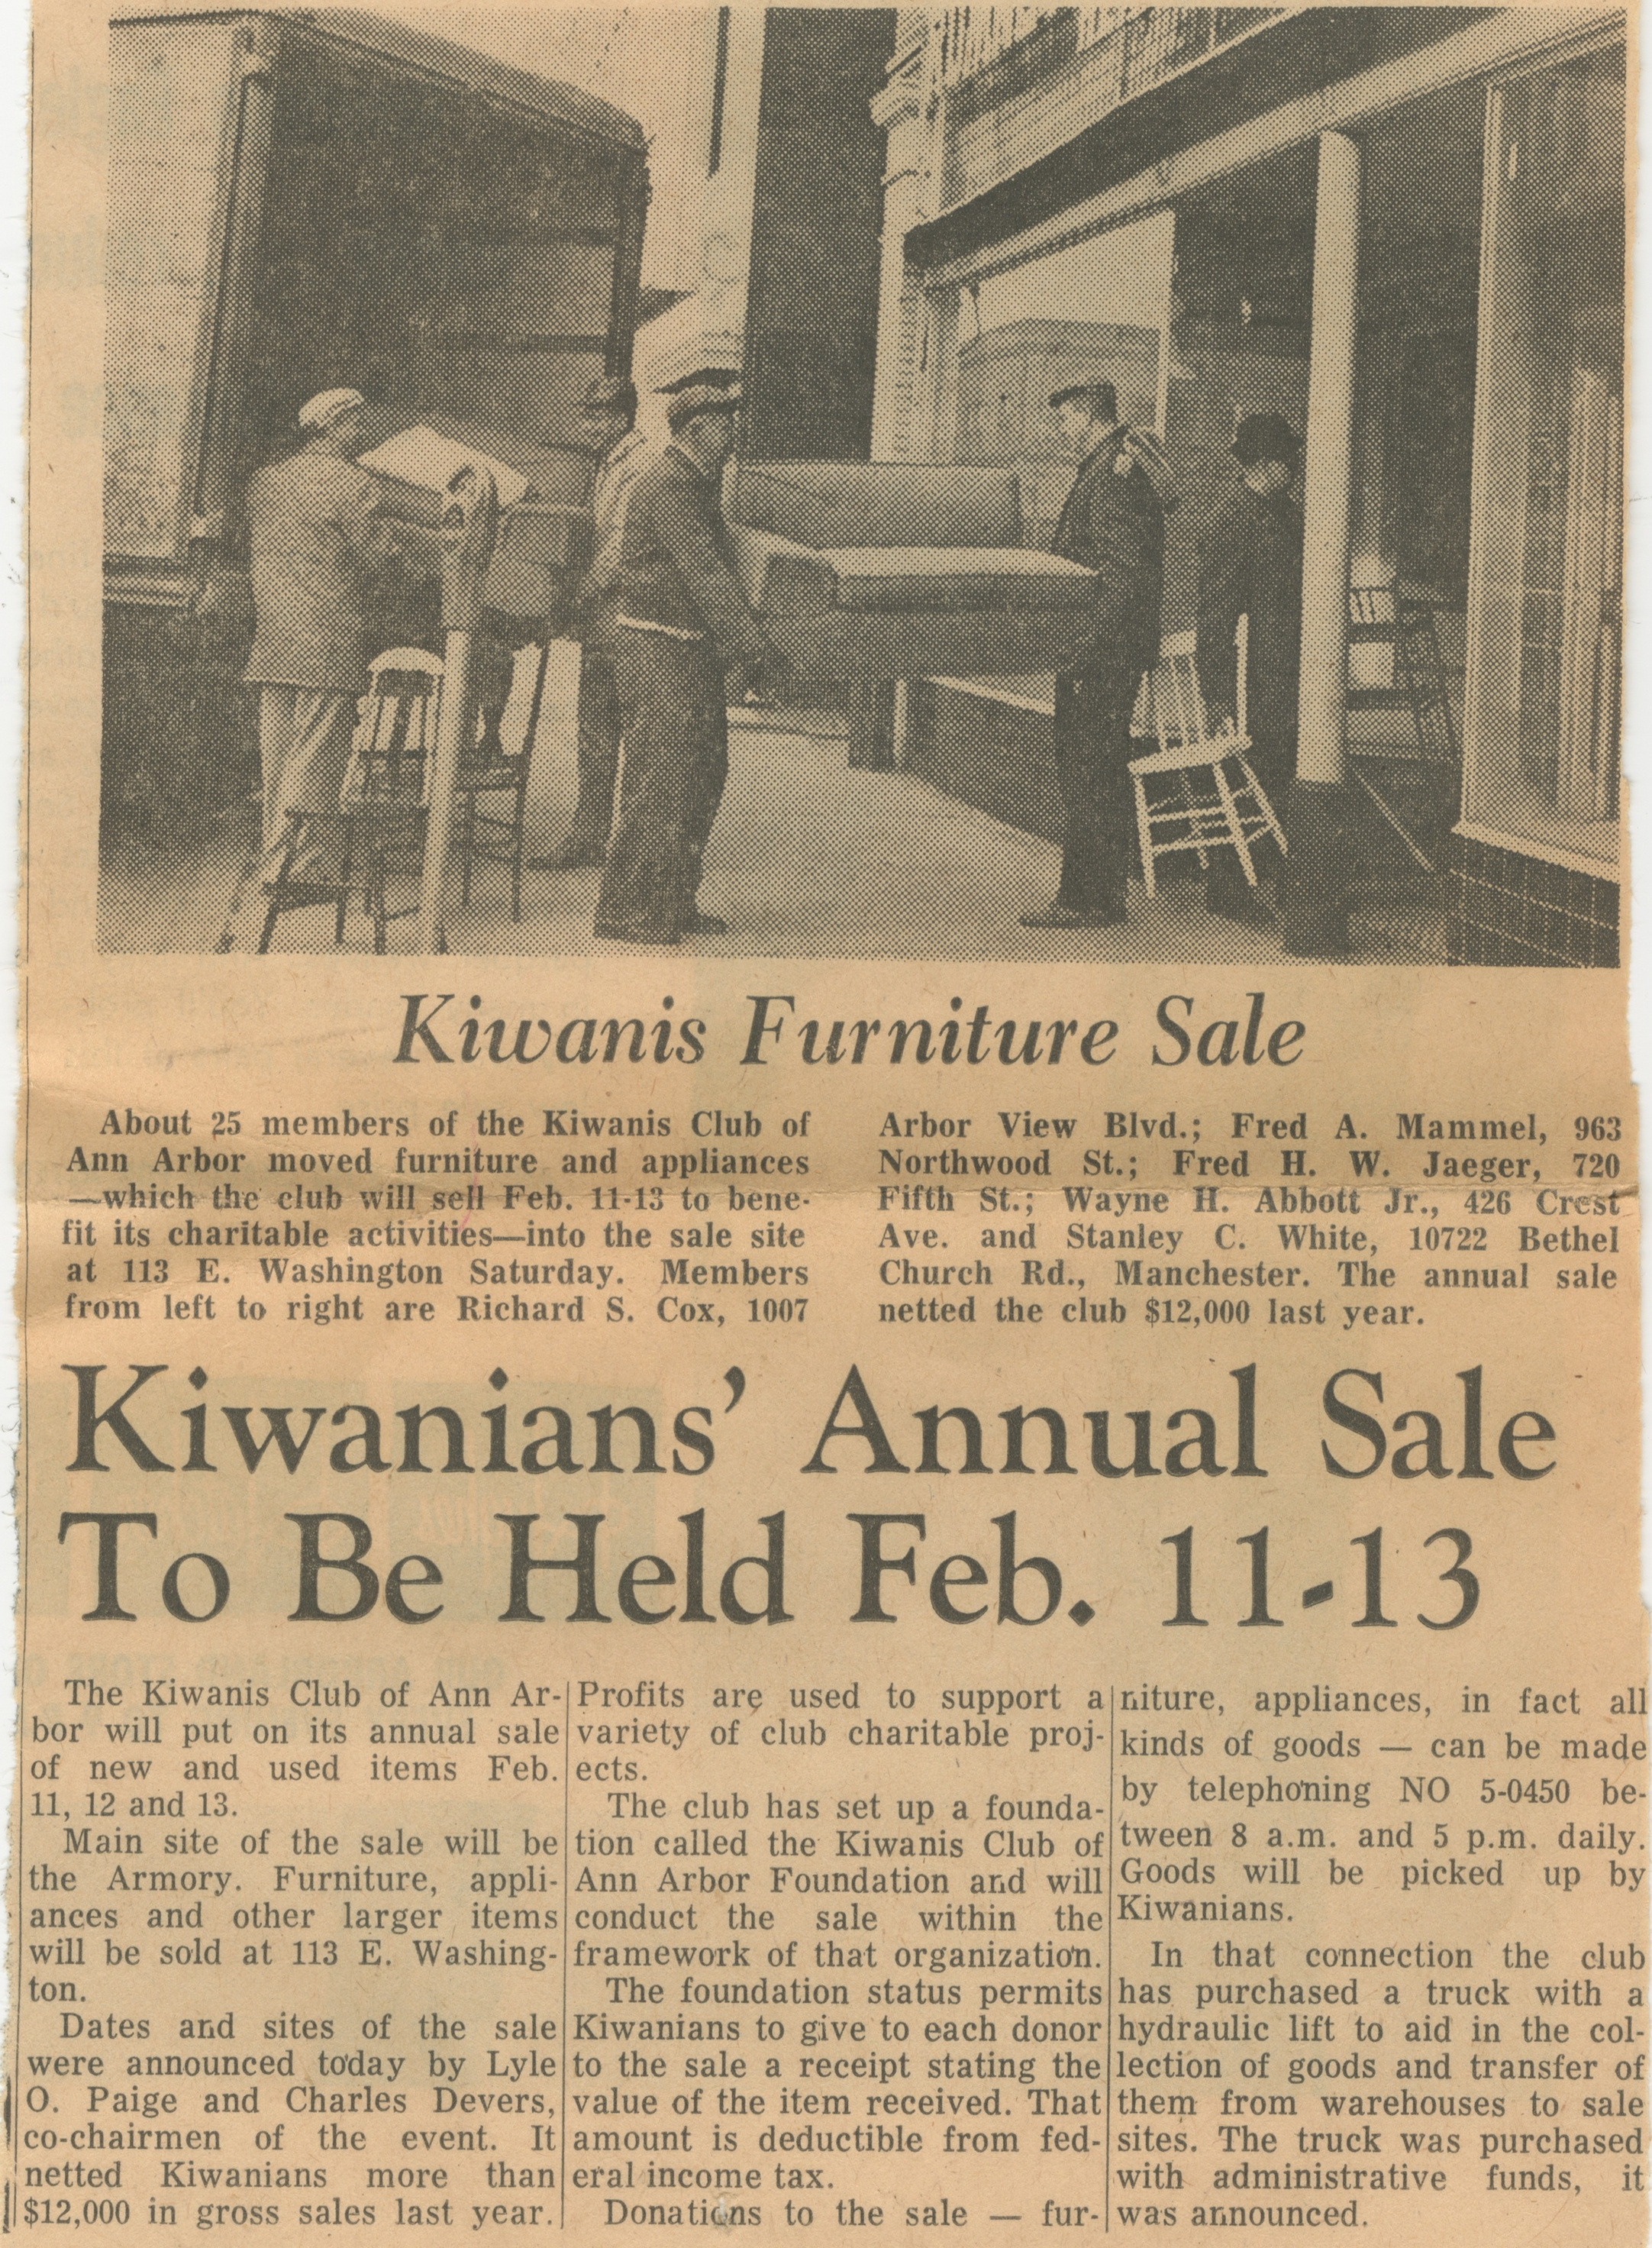 Kiwanians' Annual Sale To Be Held Feb. 11 - 13 image